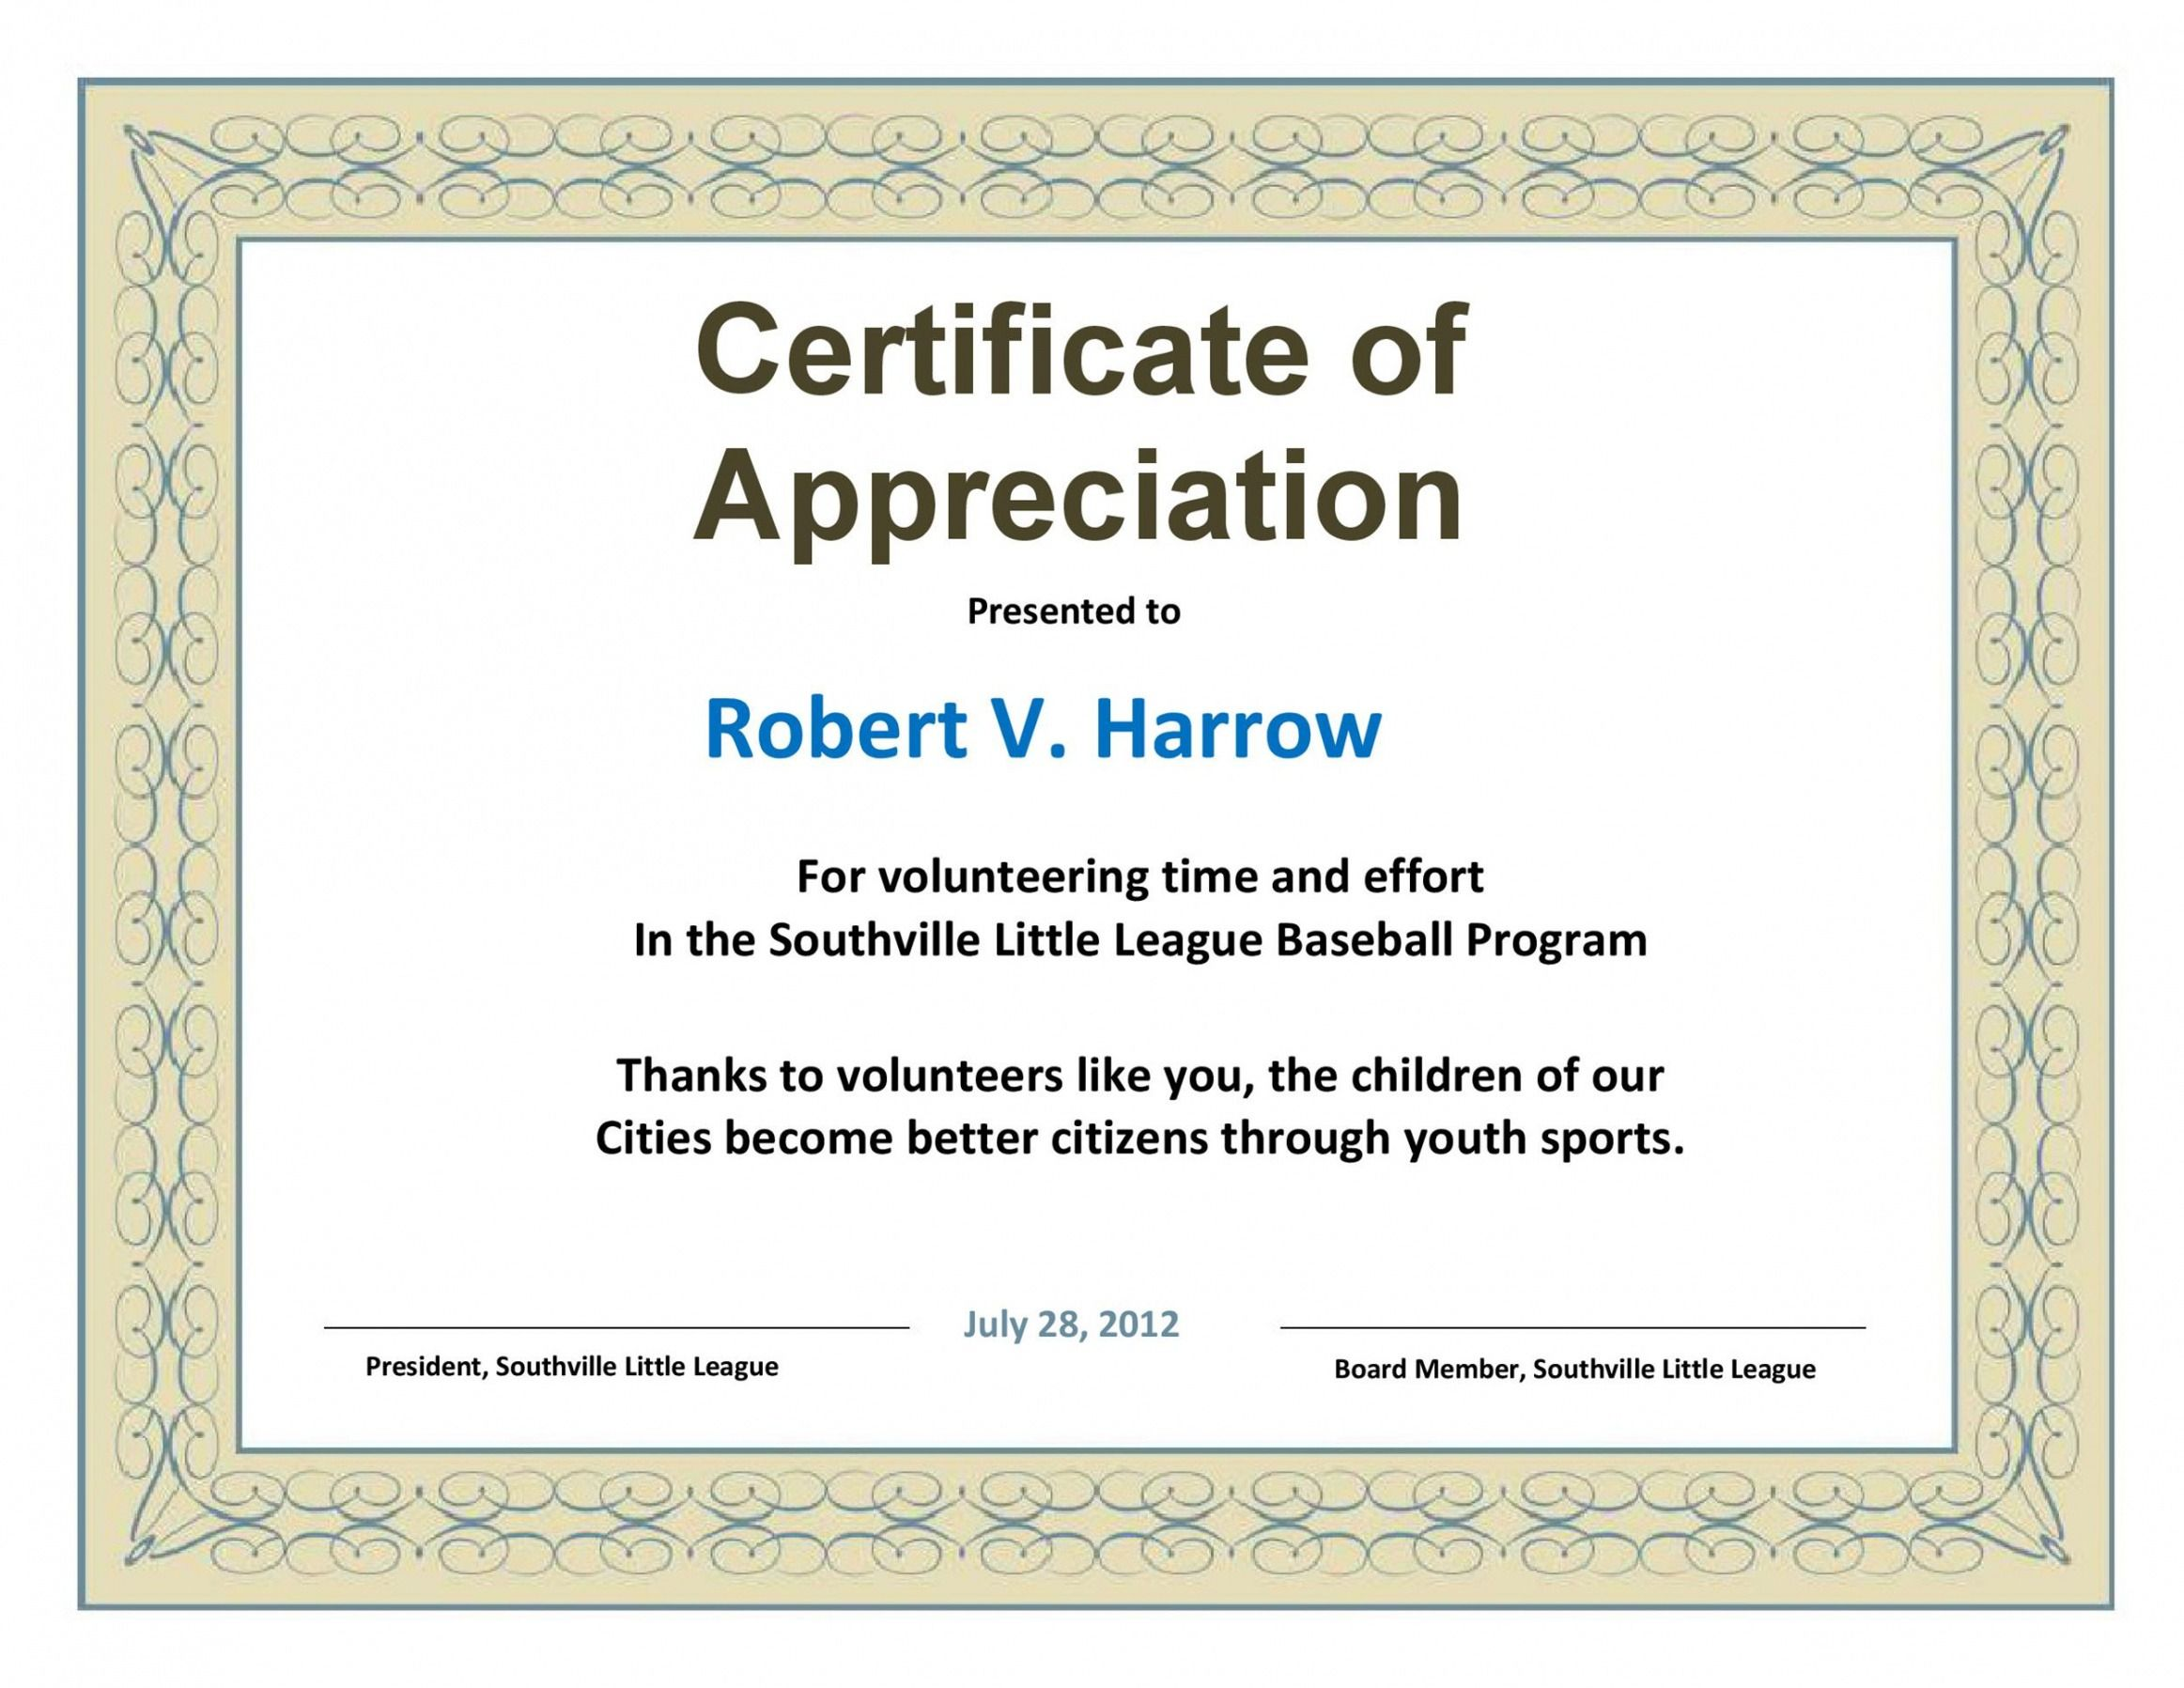 How To Make A Volunteer Recognition Certificate Template Excel In 2021 Certificate Of Appreciation Certificate Template Certificate Of Appreciation Templates